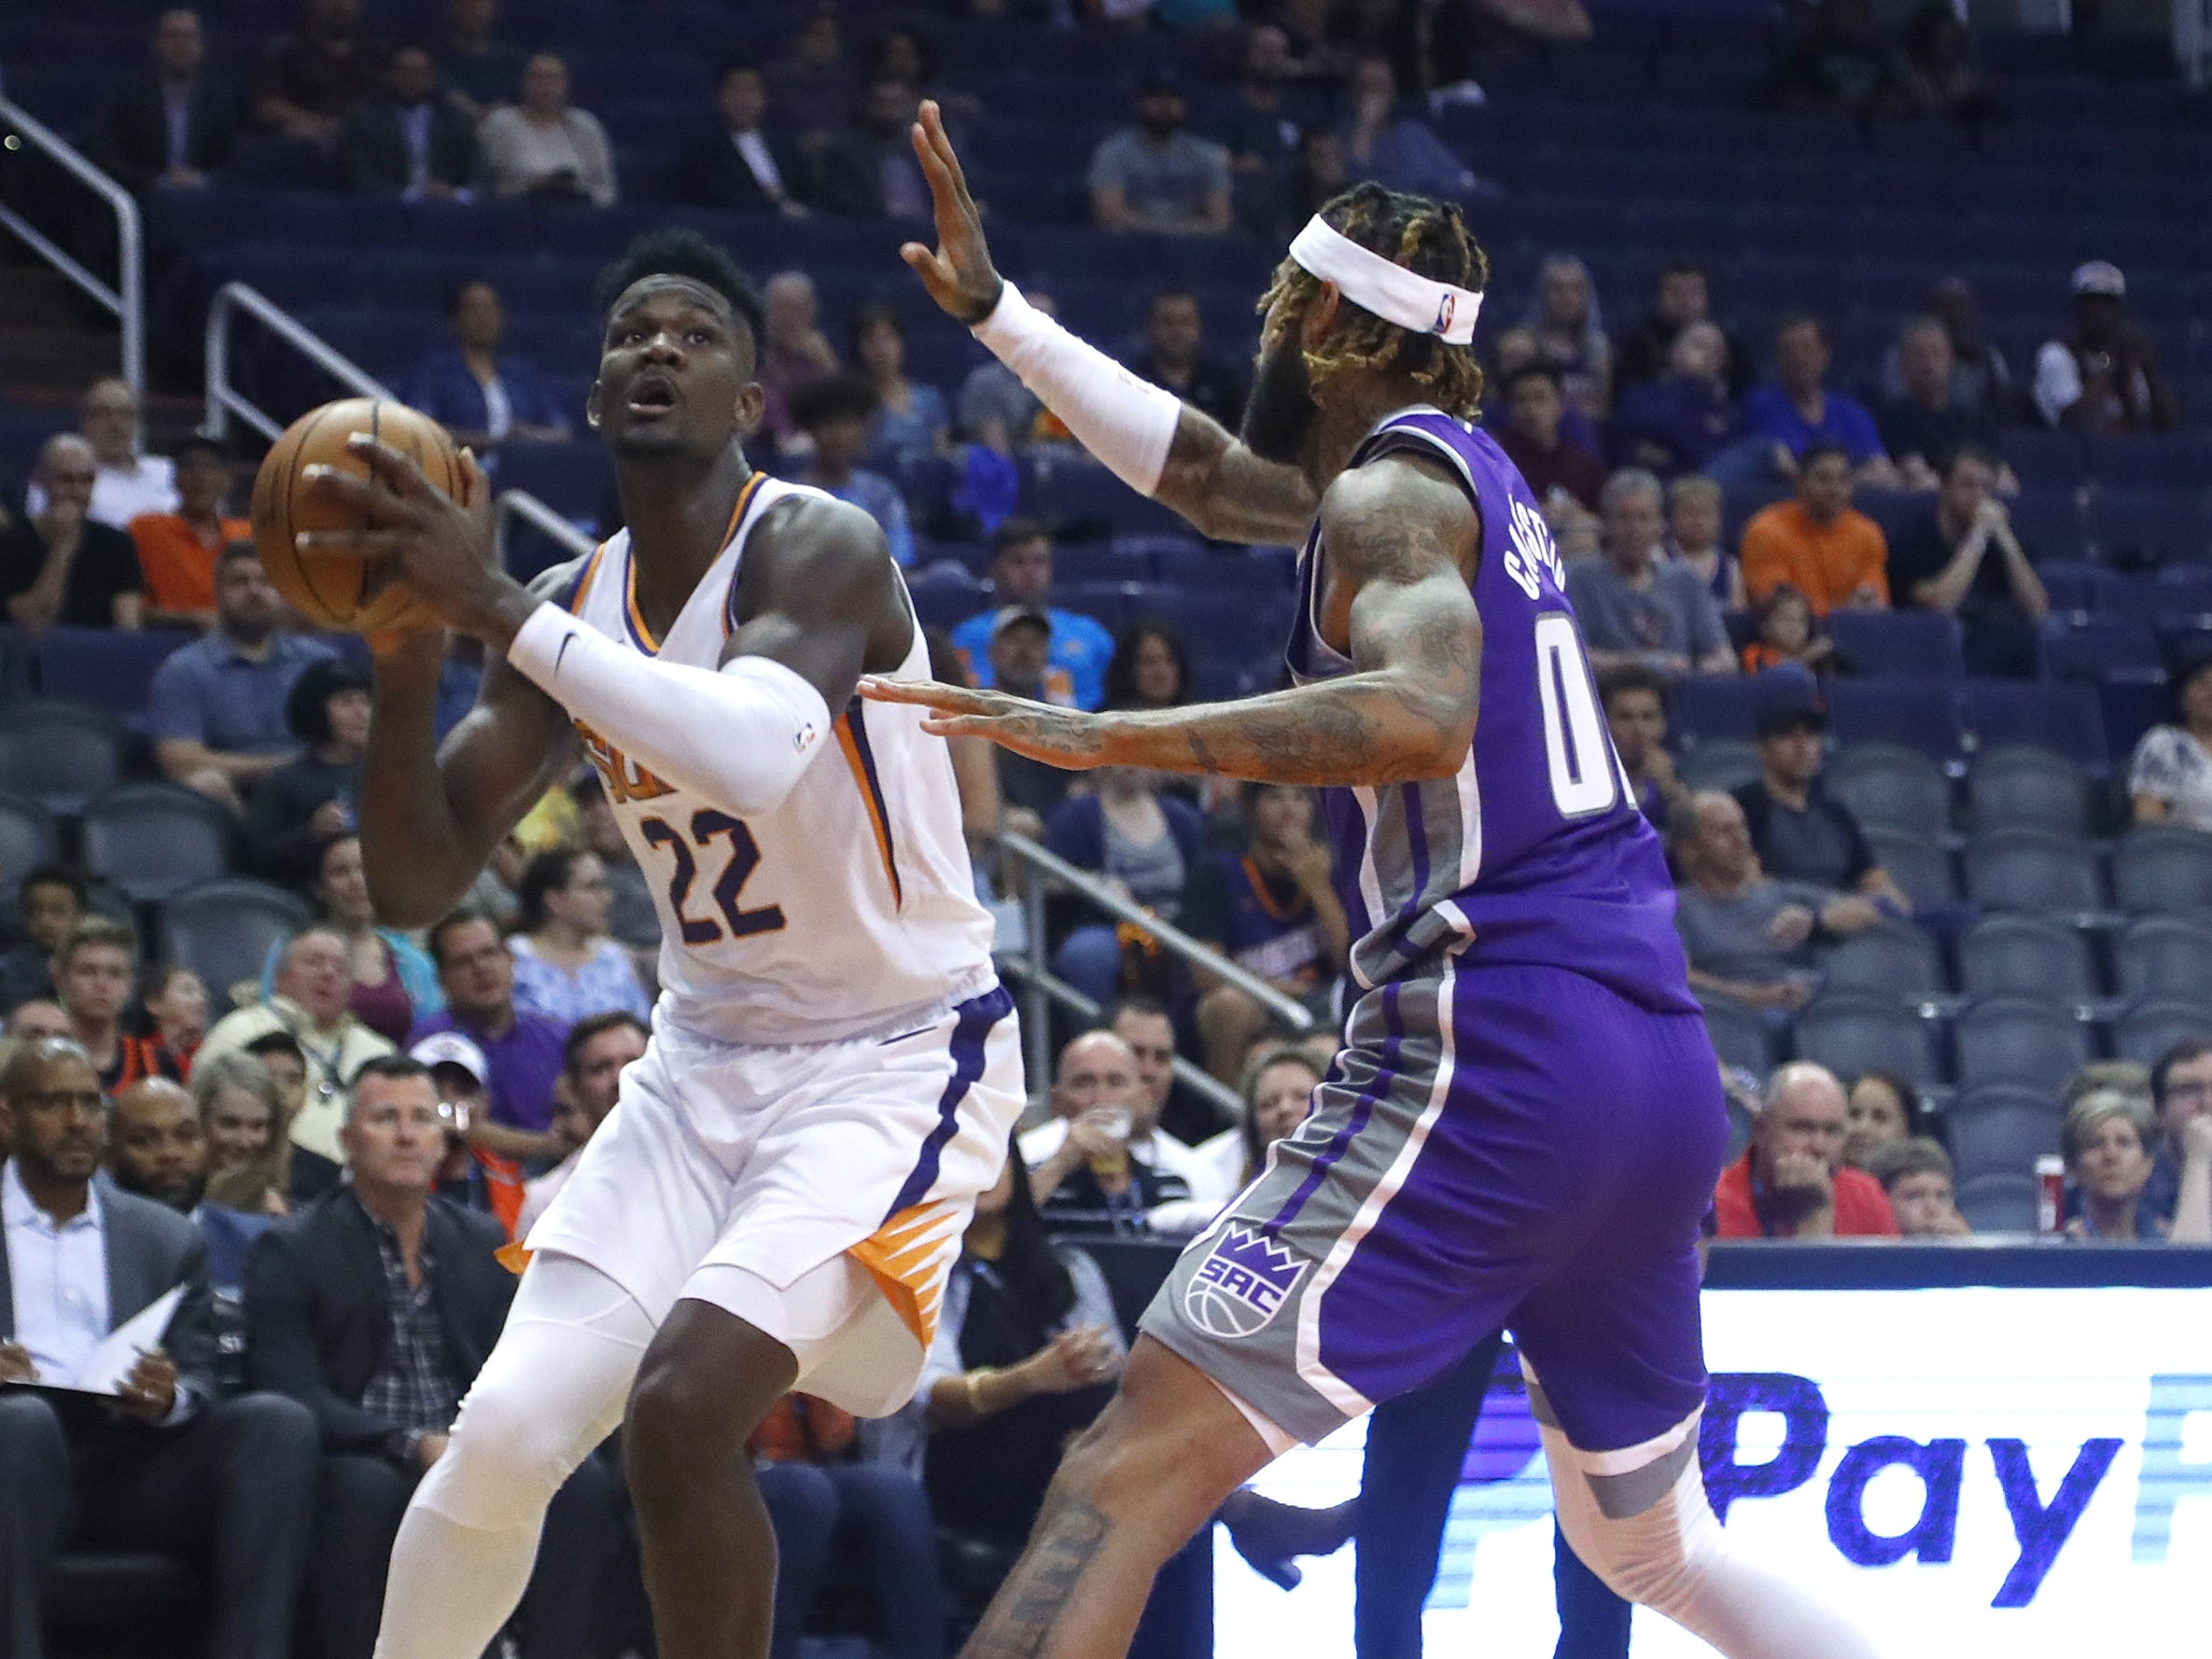 Suns' Deandre Ayton (22) pump fakes against Kings' Willie Cauley-Stein (00) during the first half at Talking Stick Resort Arena in Phoenix, Ariz. on October 1, 2018.